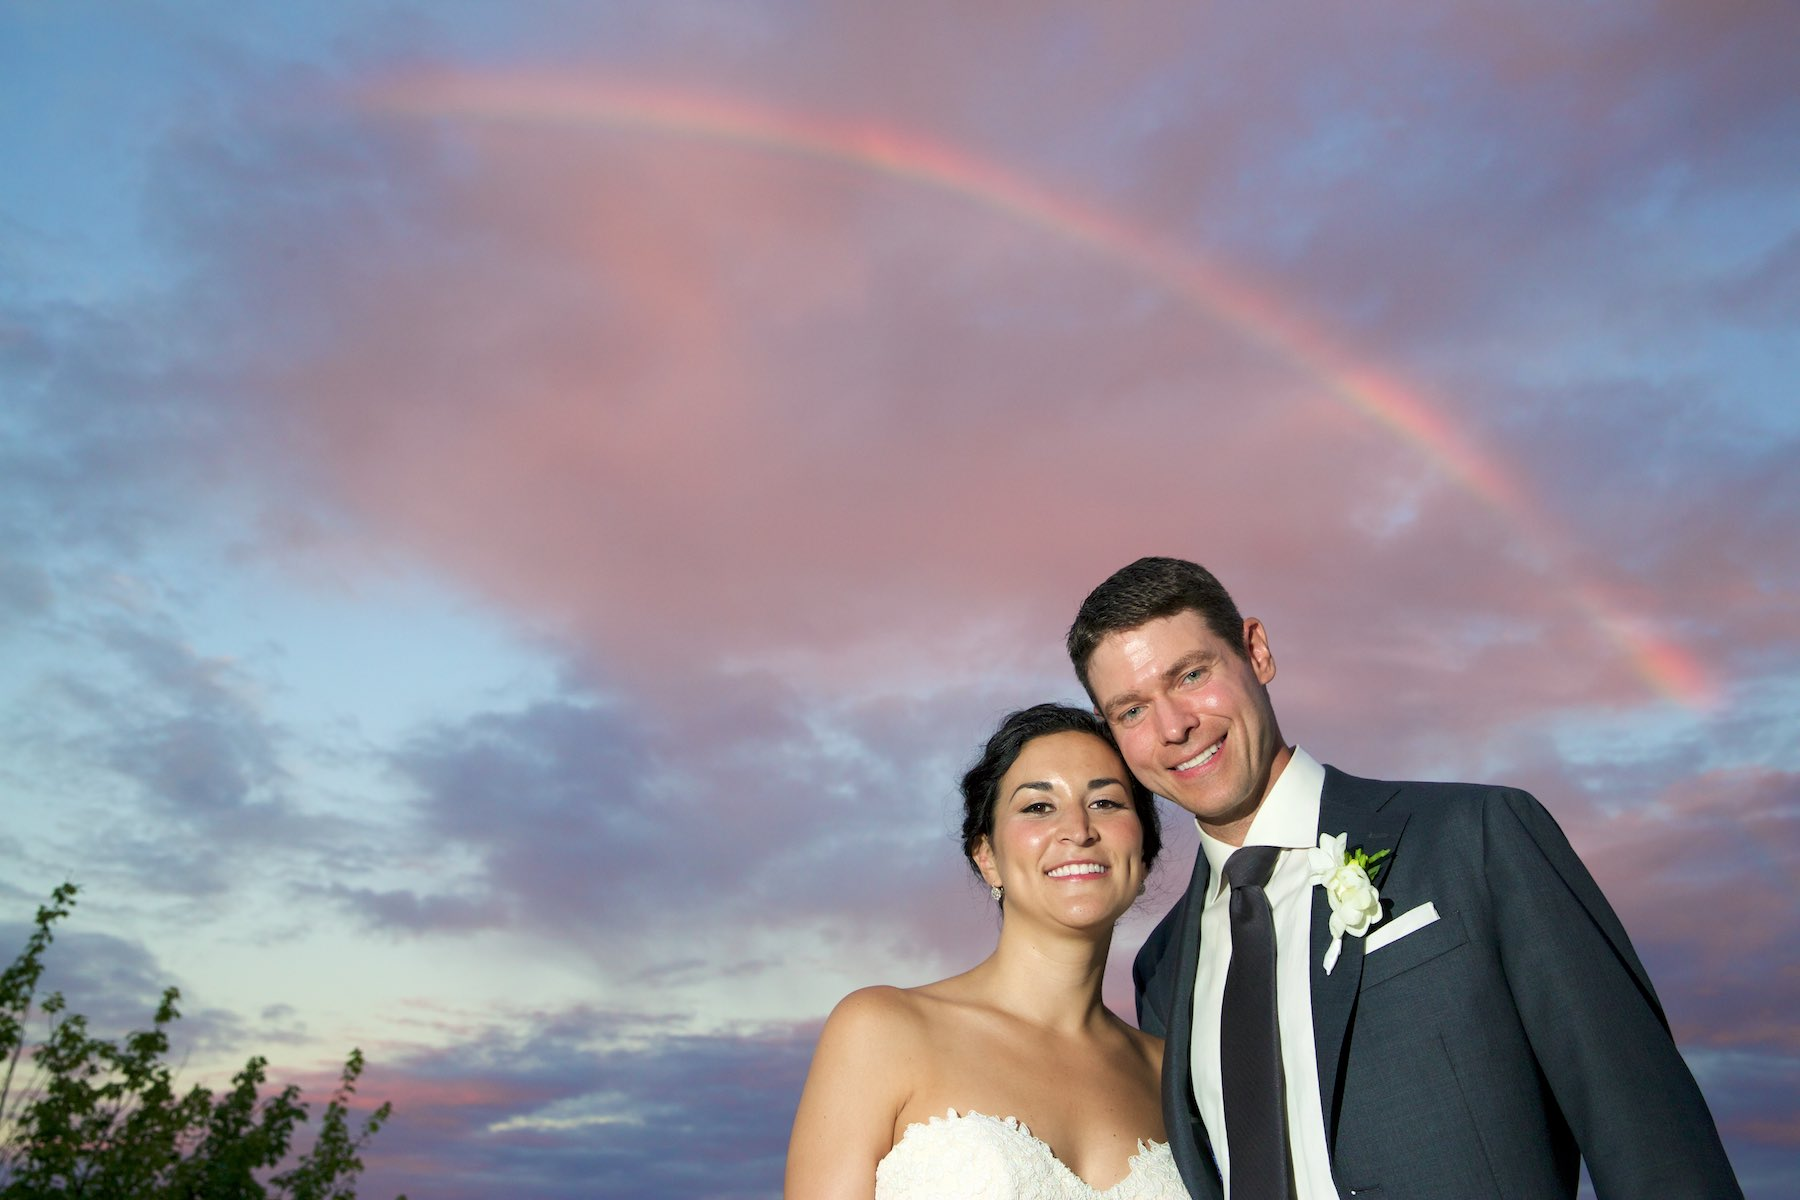 Reacting to a rainbow at sunset, a quick portrait of Emi & Daniel on balcony during wedding reception at Geneva National Golf Club in Lake Geneva, Wisconsin. Wedding photography by Steve & Tiffany Warmowski.